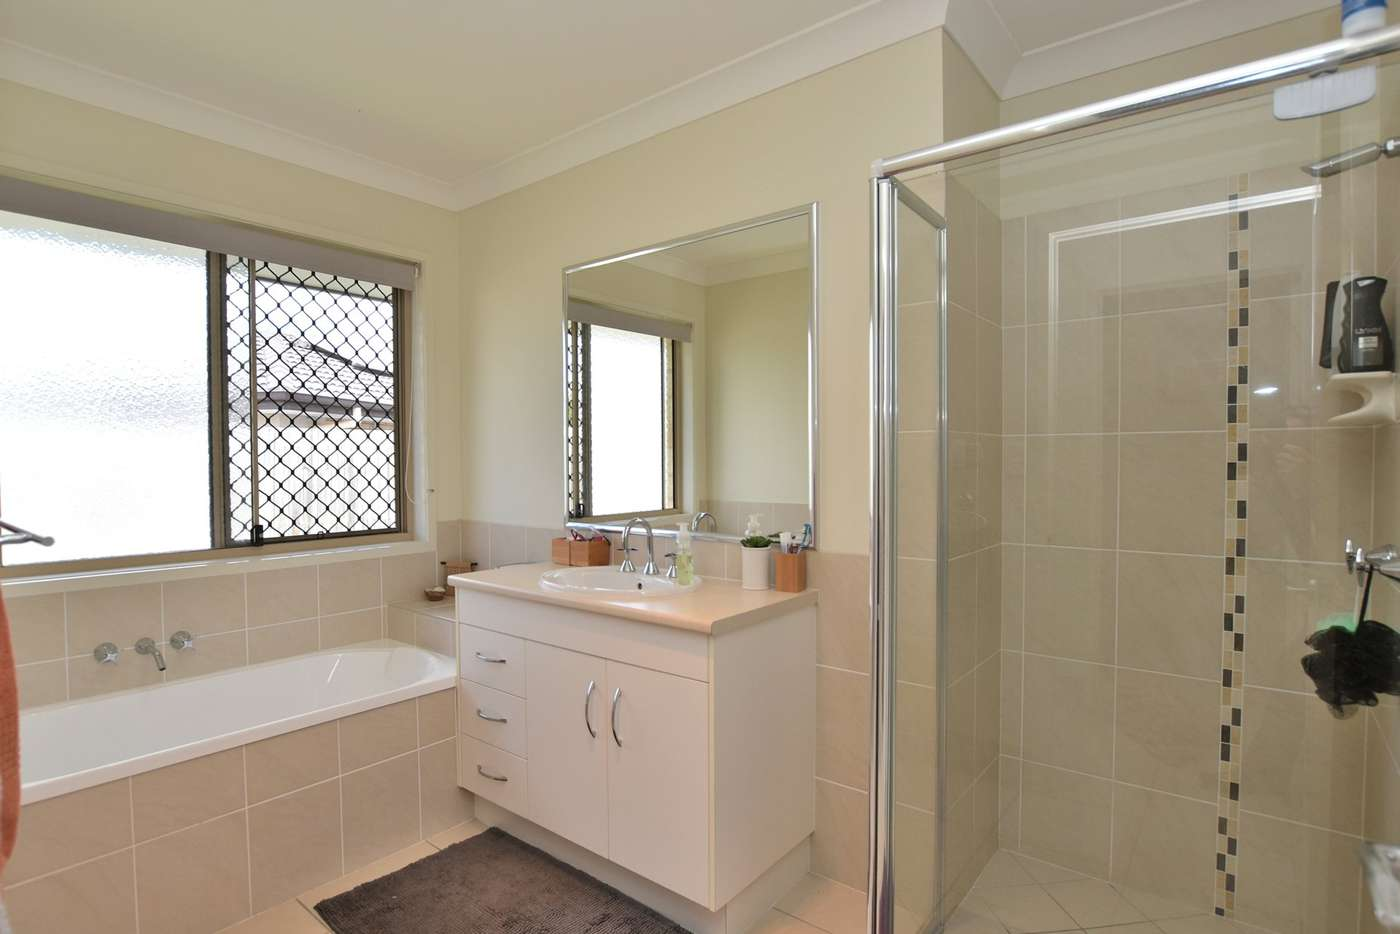 Sixth view of Homely house listing, 19 Taminga Circuit, D'aguilar QLD 4514